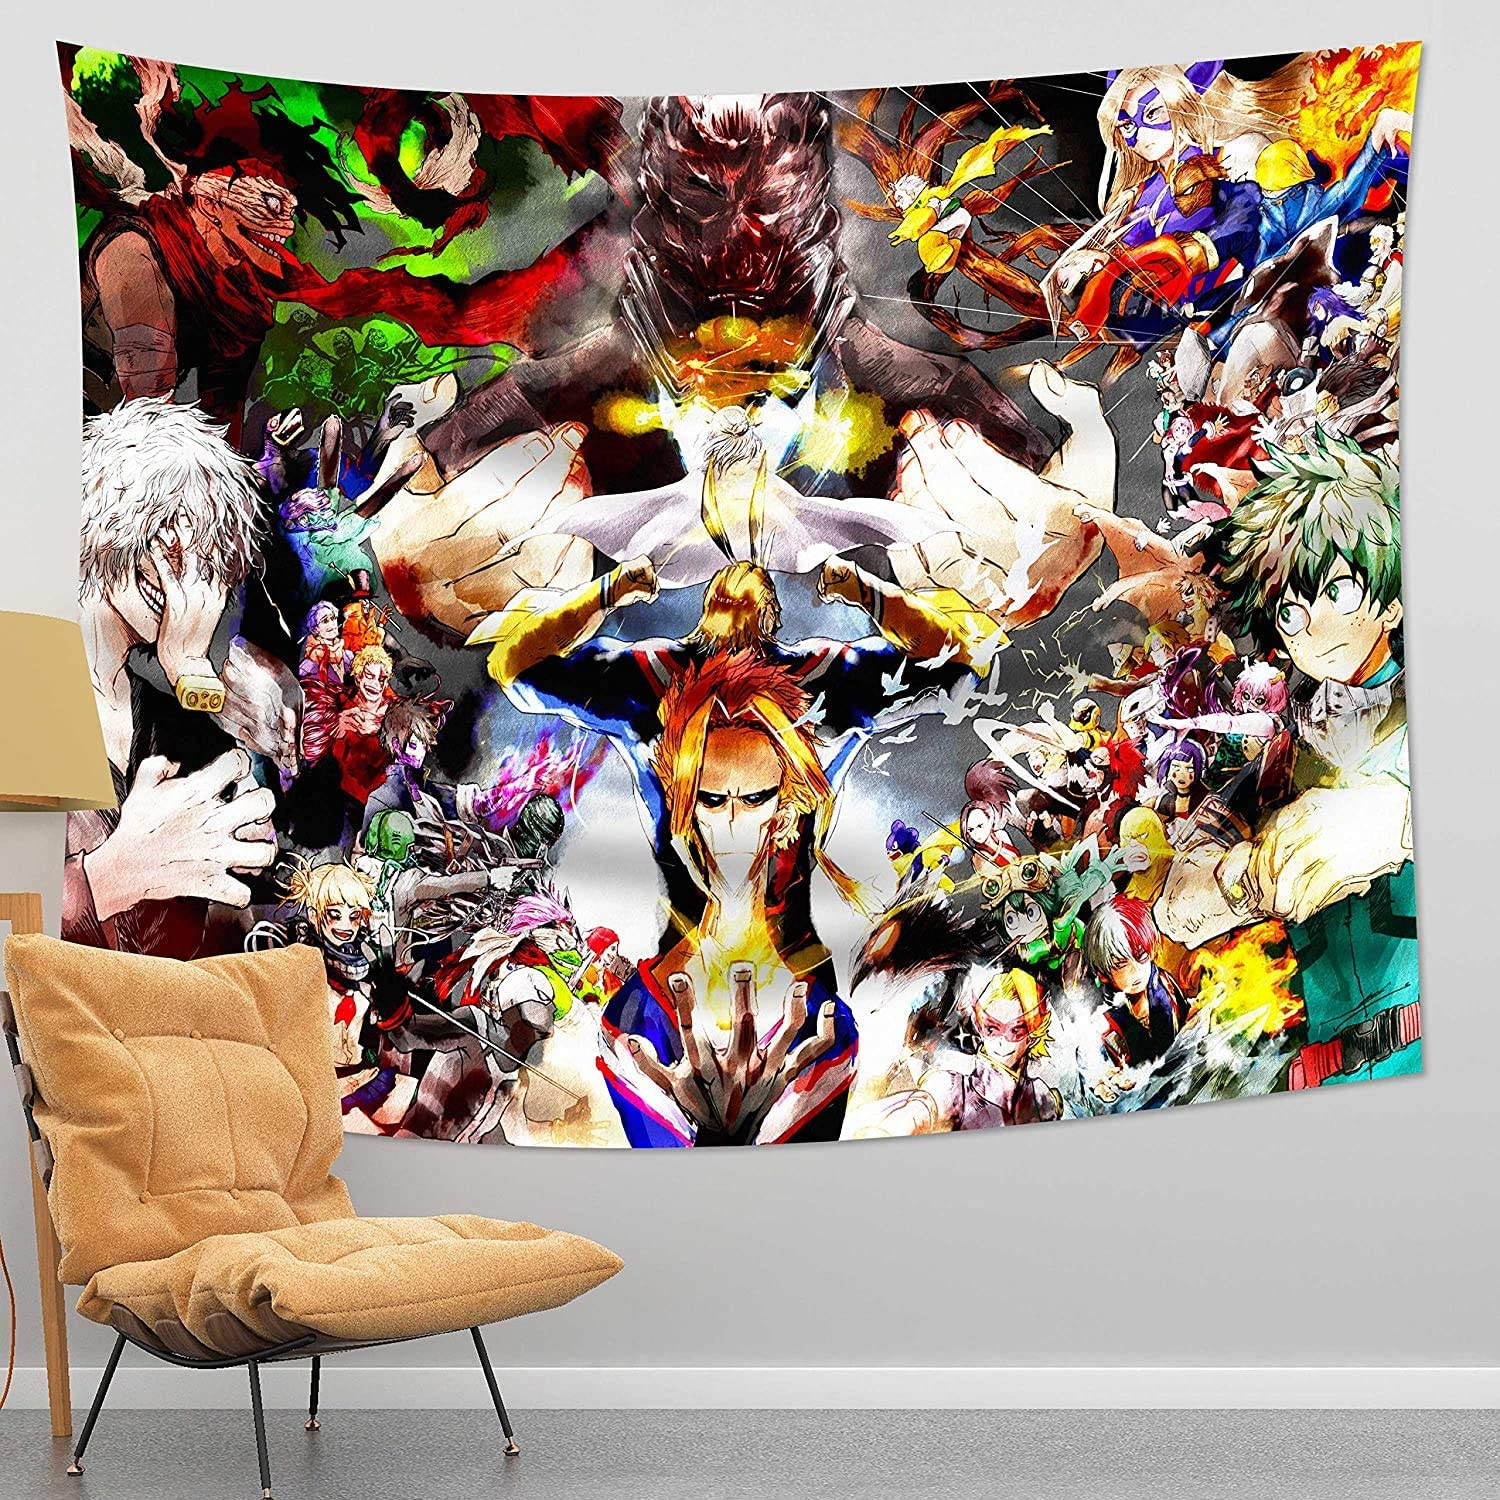 Cartoon Anime One Piece All Tapestry Wall Hanging Decoration for Apartment Home Art Wall Tapestry for Bedroom Living Room Dorm Fashion 50x60in (My_Hero_Academia Tapestry 2, 50x60in)